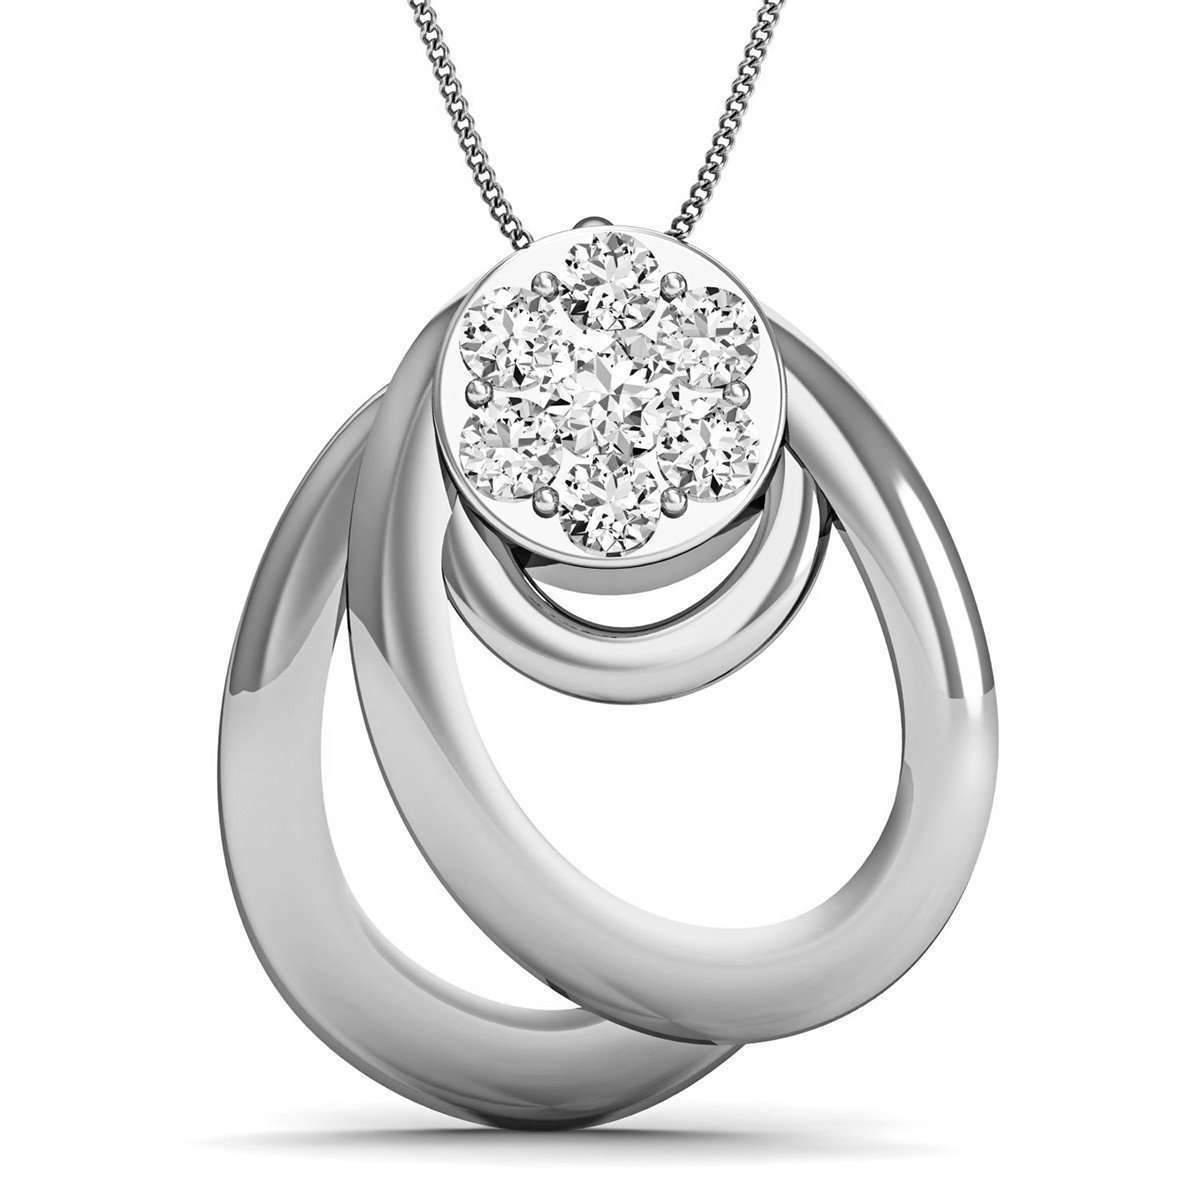 Diamoire Jewels Diamond and 18kt White Gold Nature Inspired Designer Pendant by Diamoire aRNfH8